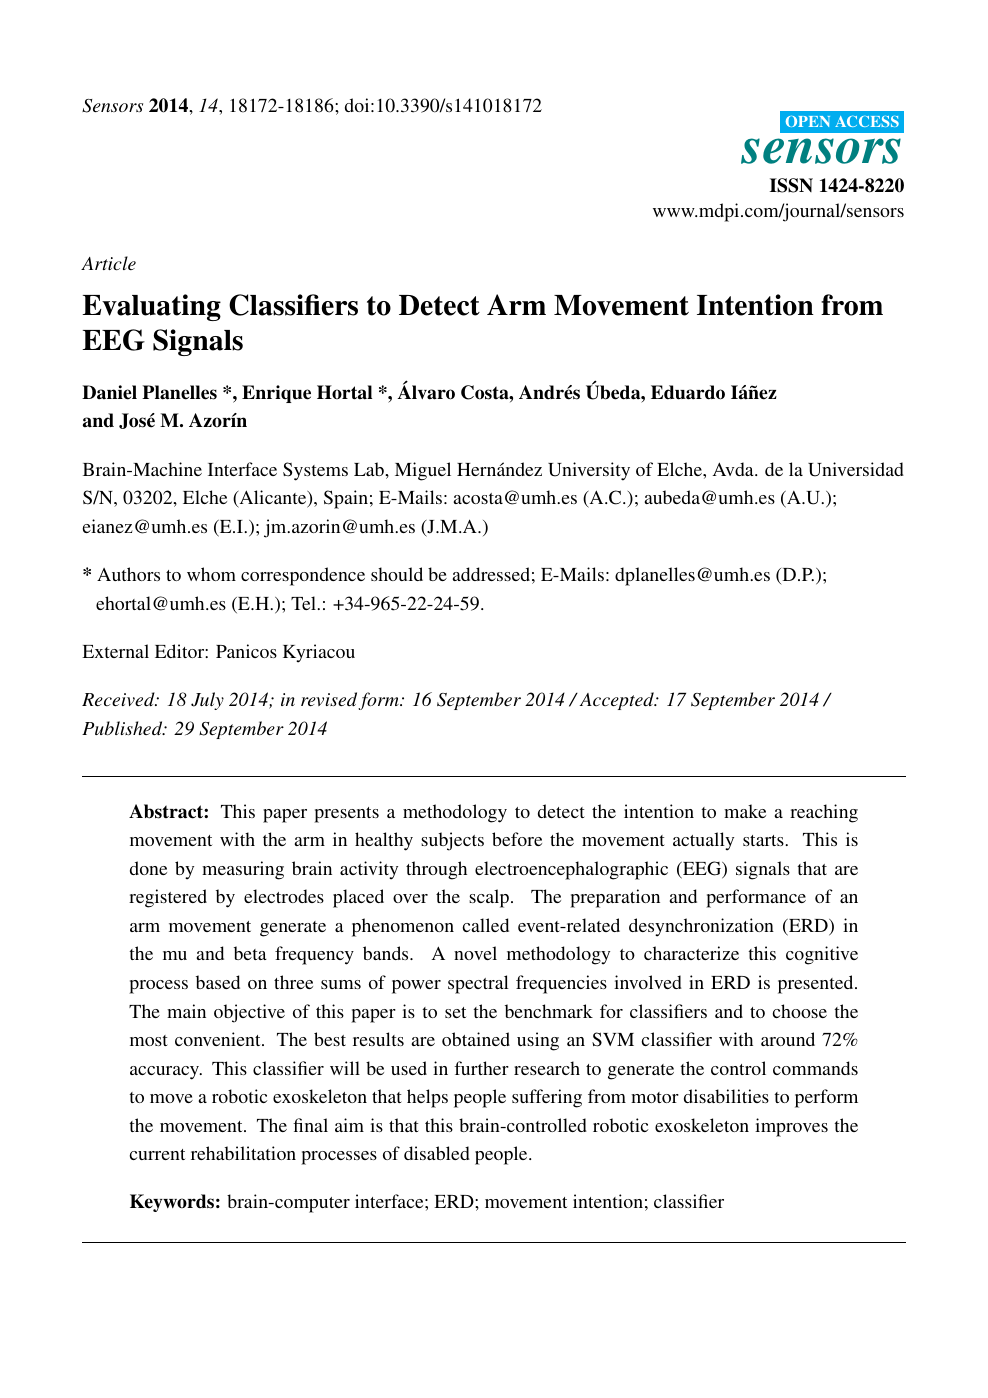 Evaluating Classifiers to Detect Arm Movement Intention from